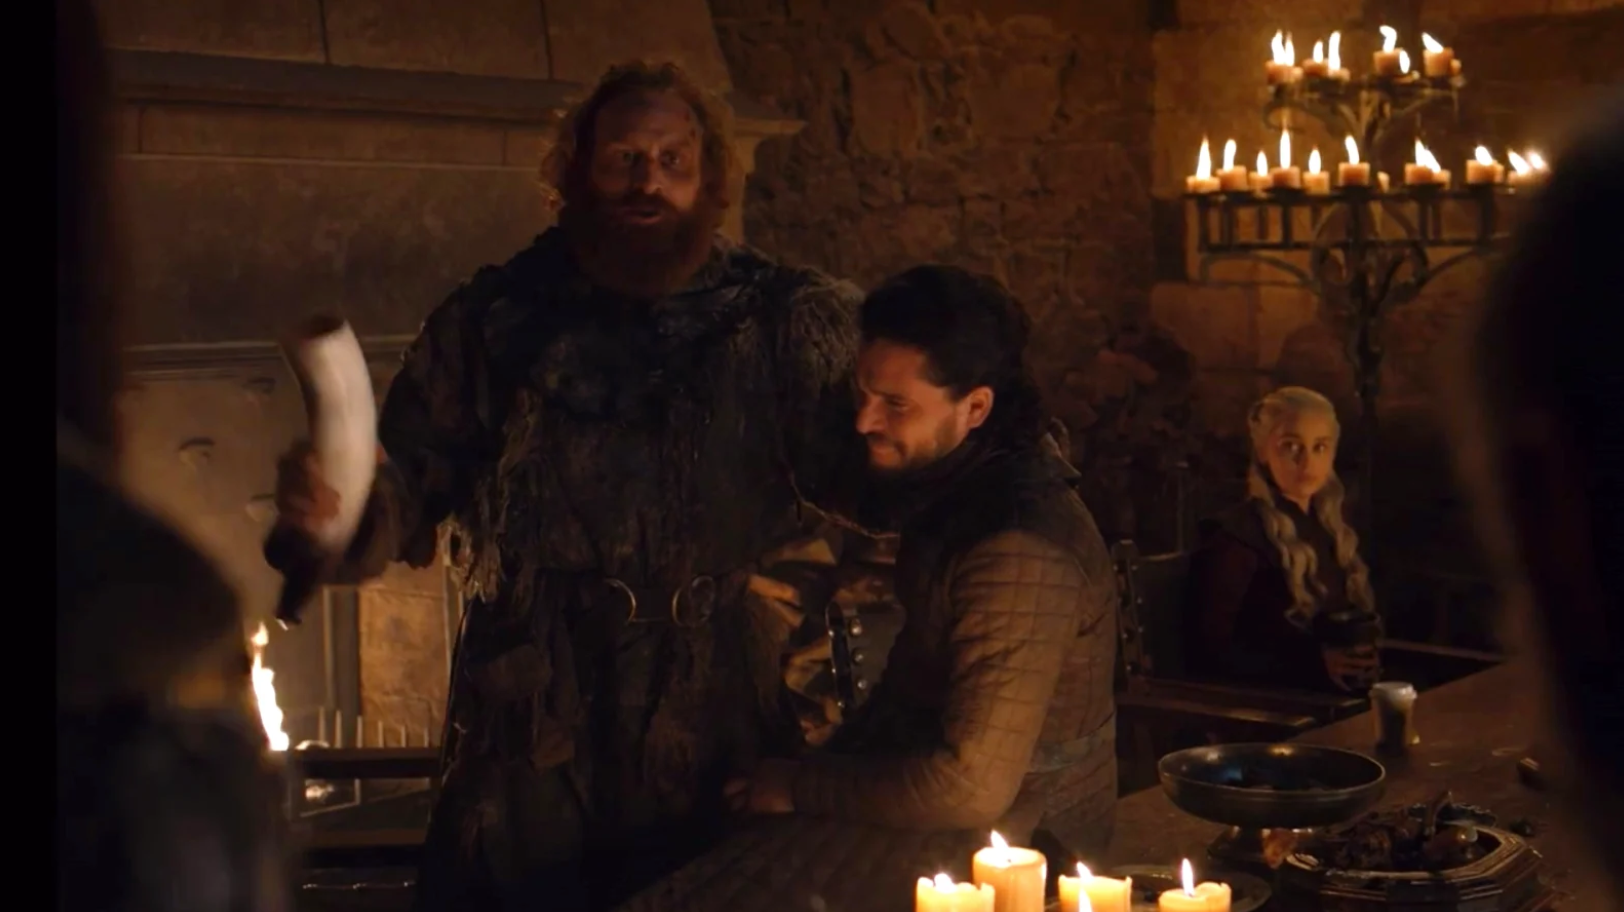 RIP To The Game Of Thrones Starbucks Cup, Gone Too Soon